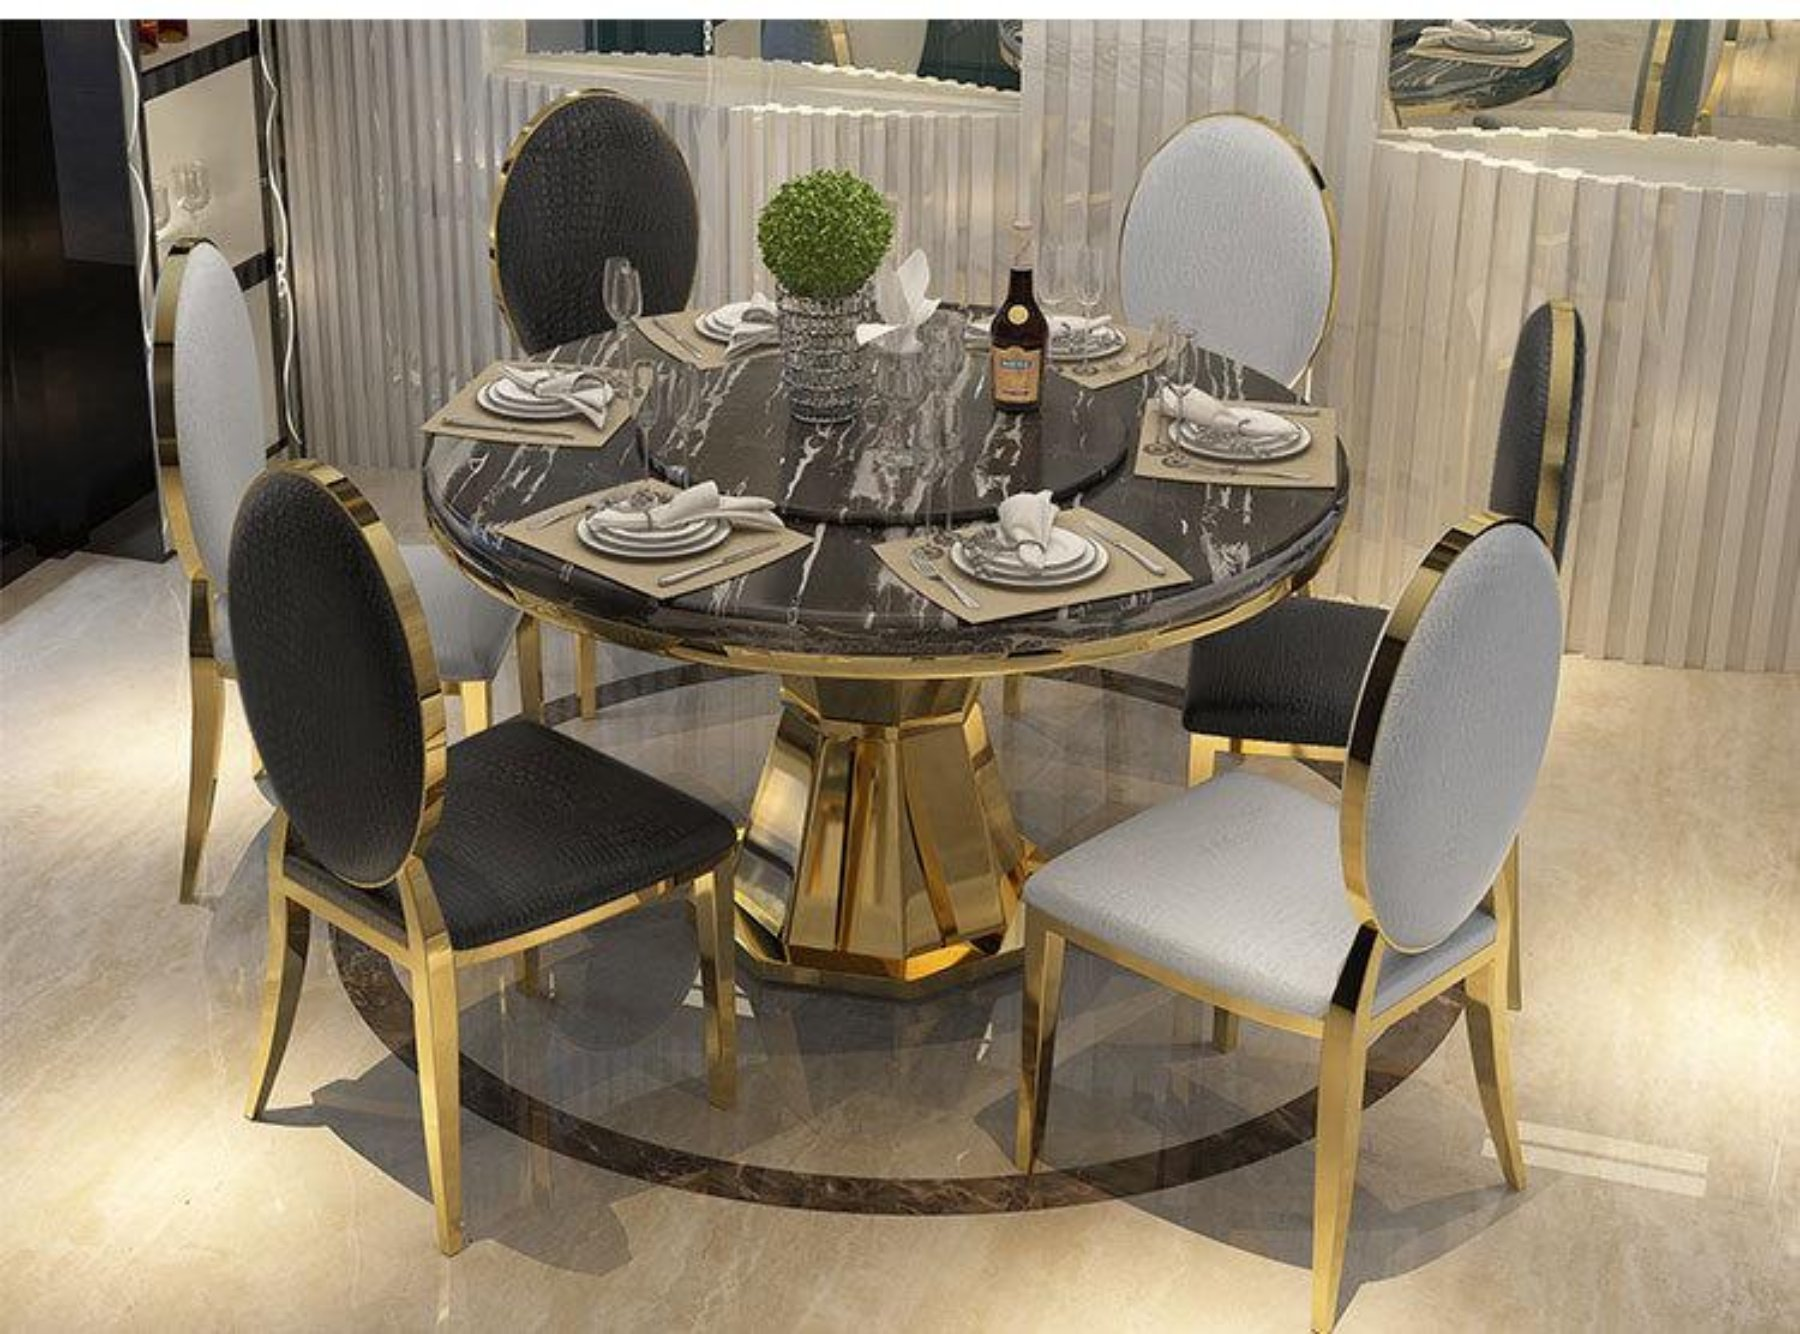 Golden Round Marble Top Dining Table With Luxury Chairs Marble